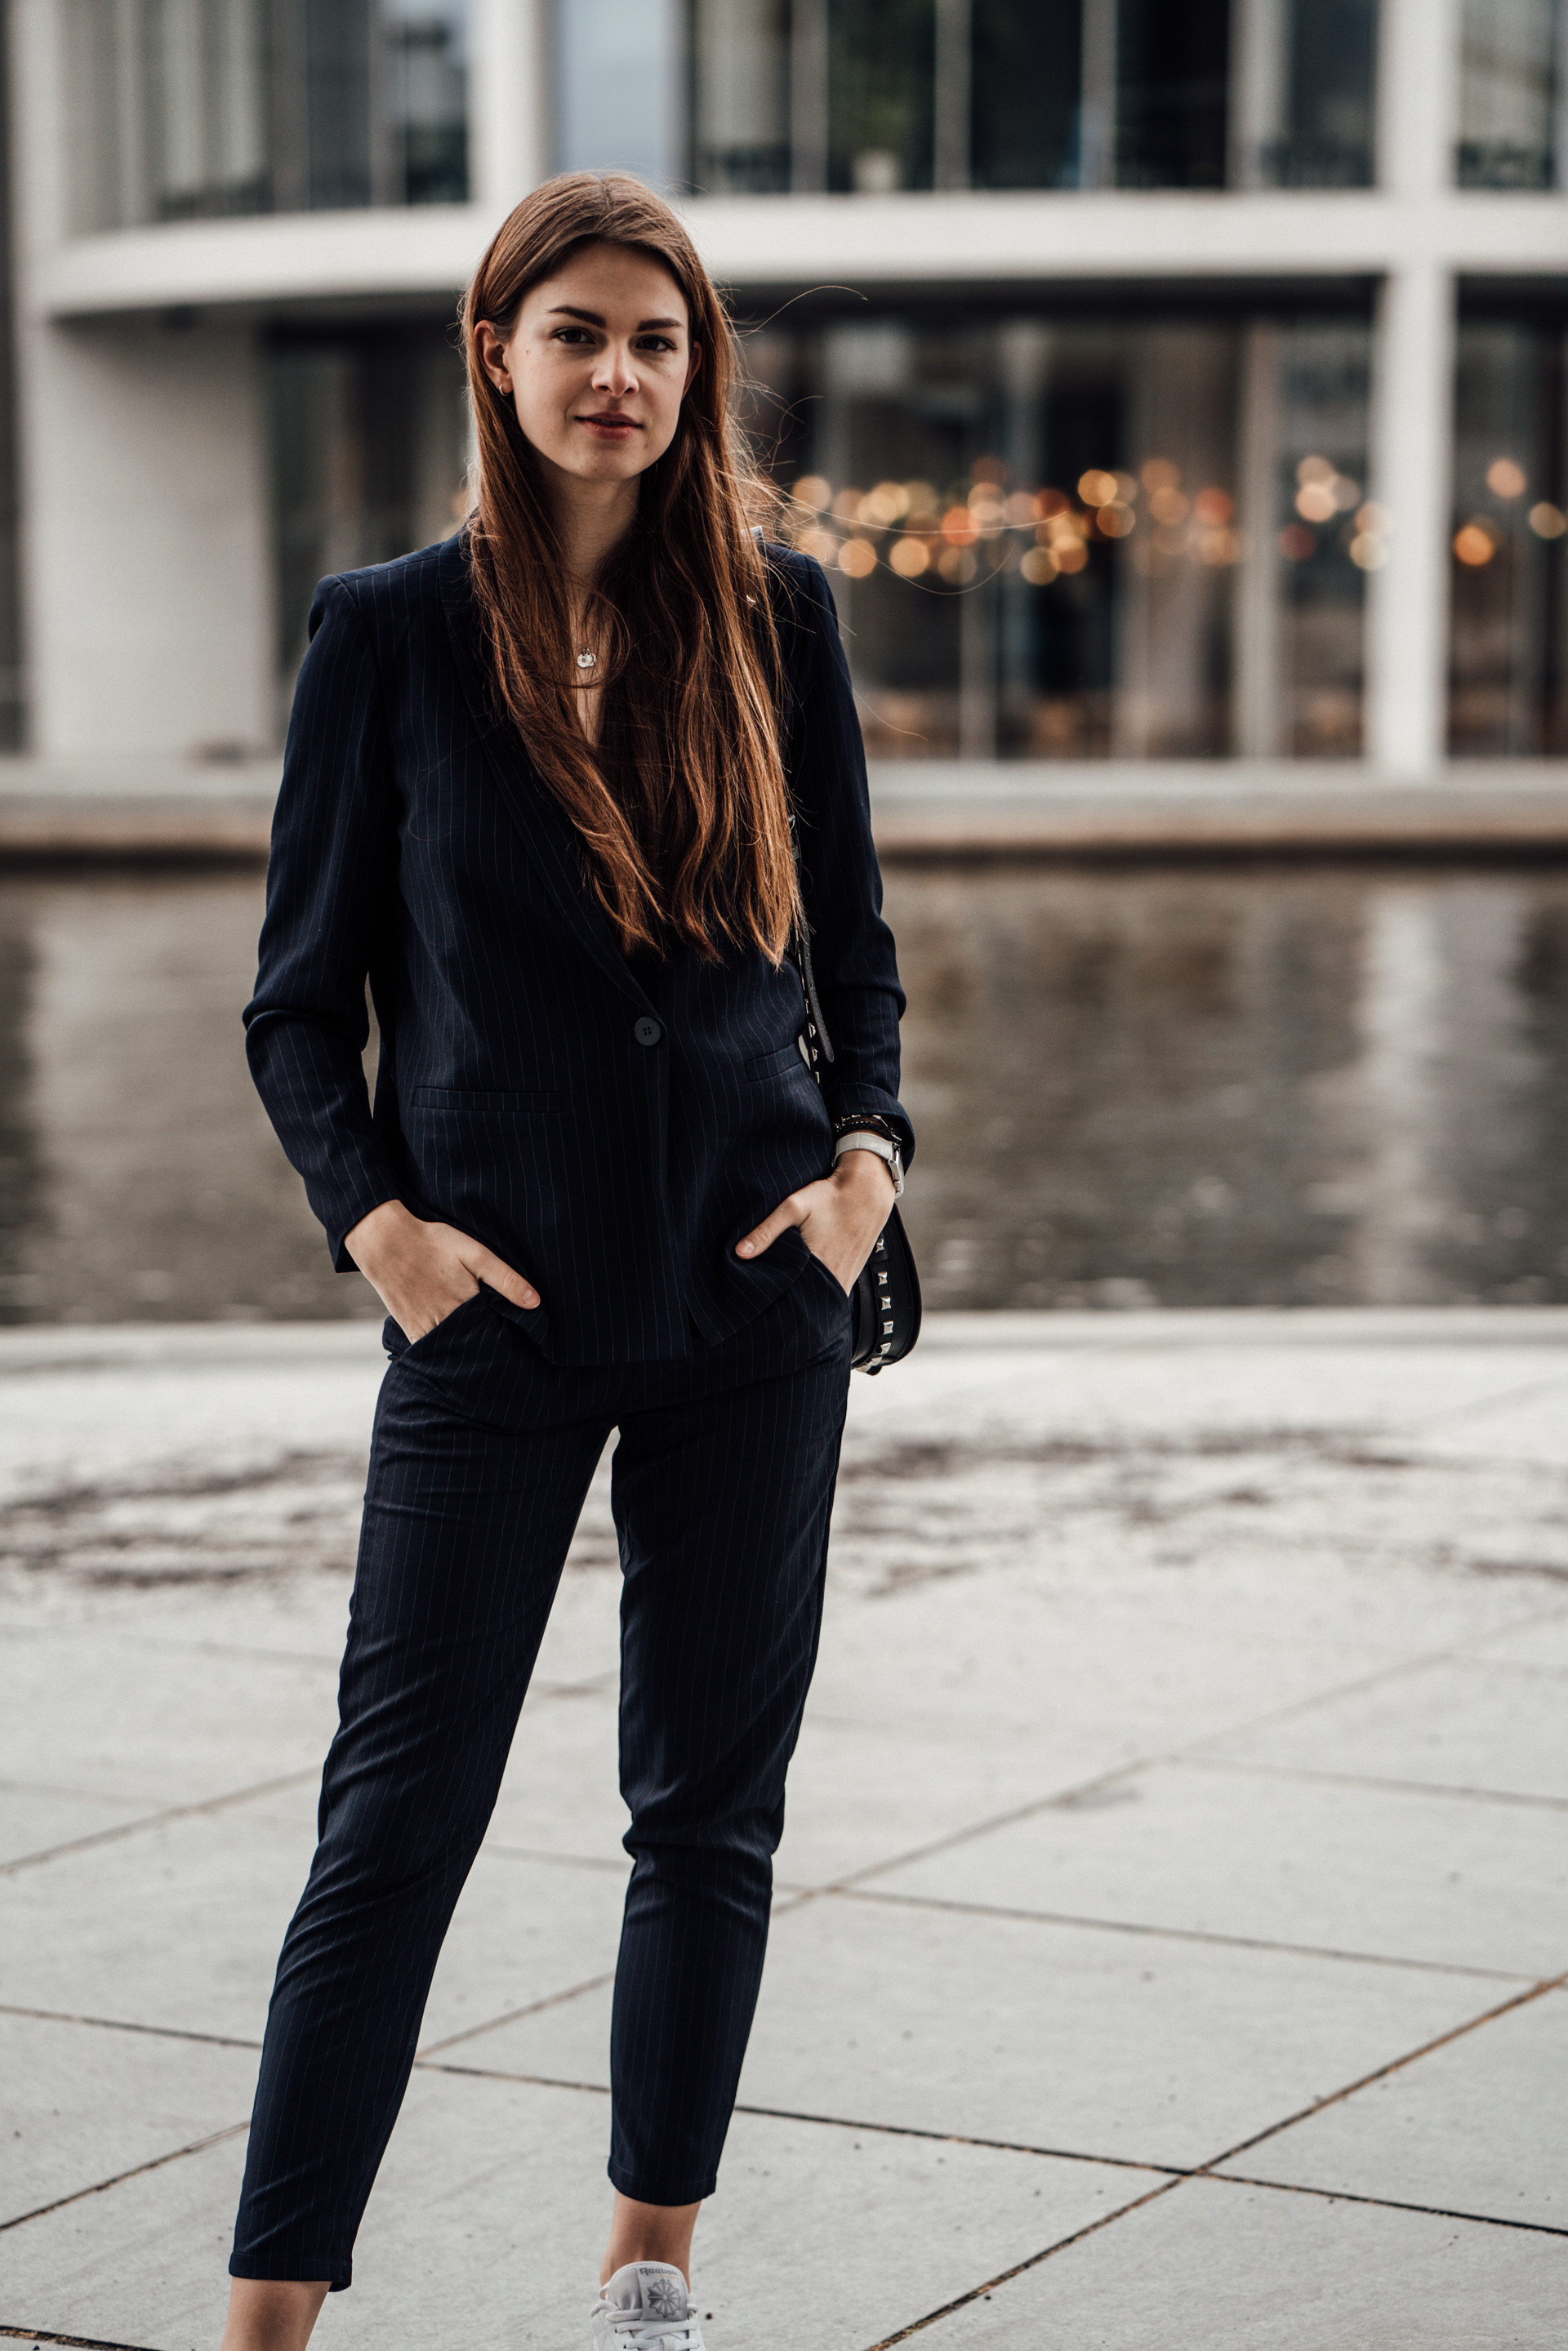 Casual Chic Outfit: Women's suit